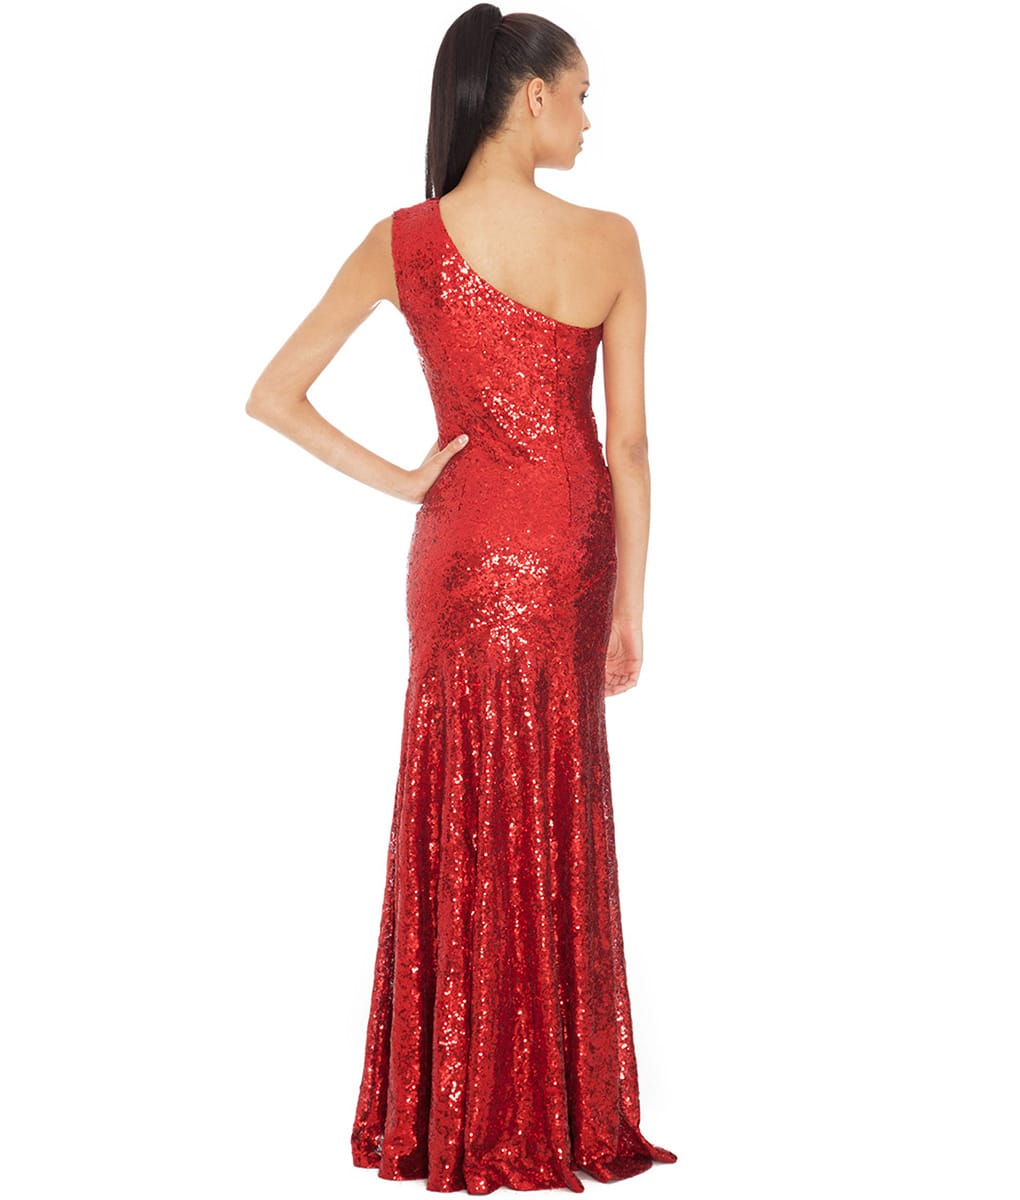 Alila-One-shoulder-red-sequin-gown-back-city-goddess